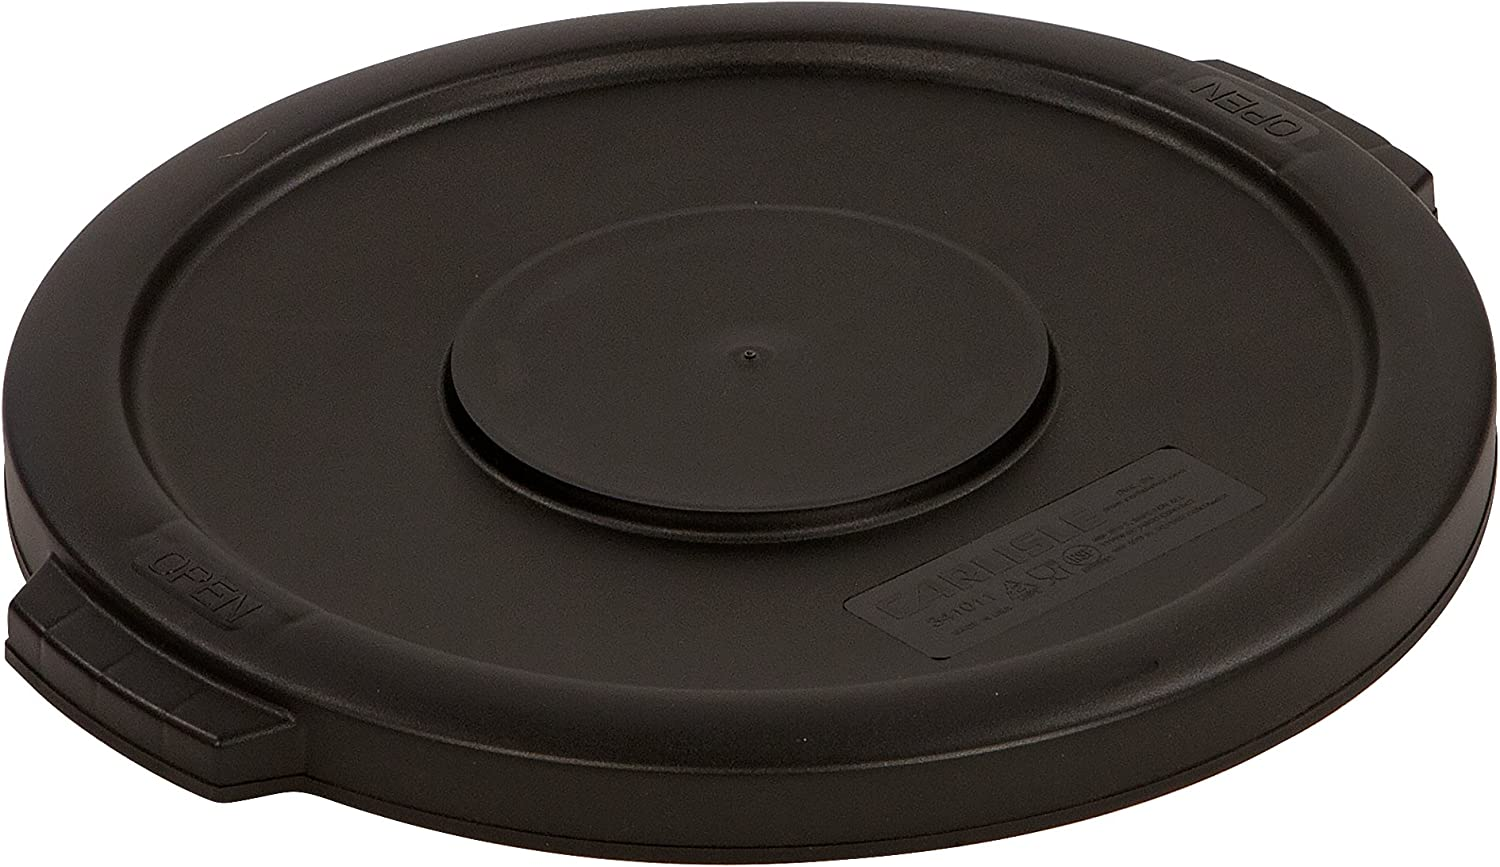 Carlisle 34101103 Bronco Round Waste Bin Food Container Lid, 10 Gallon, Black